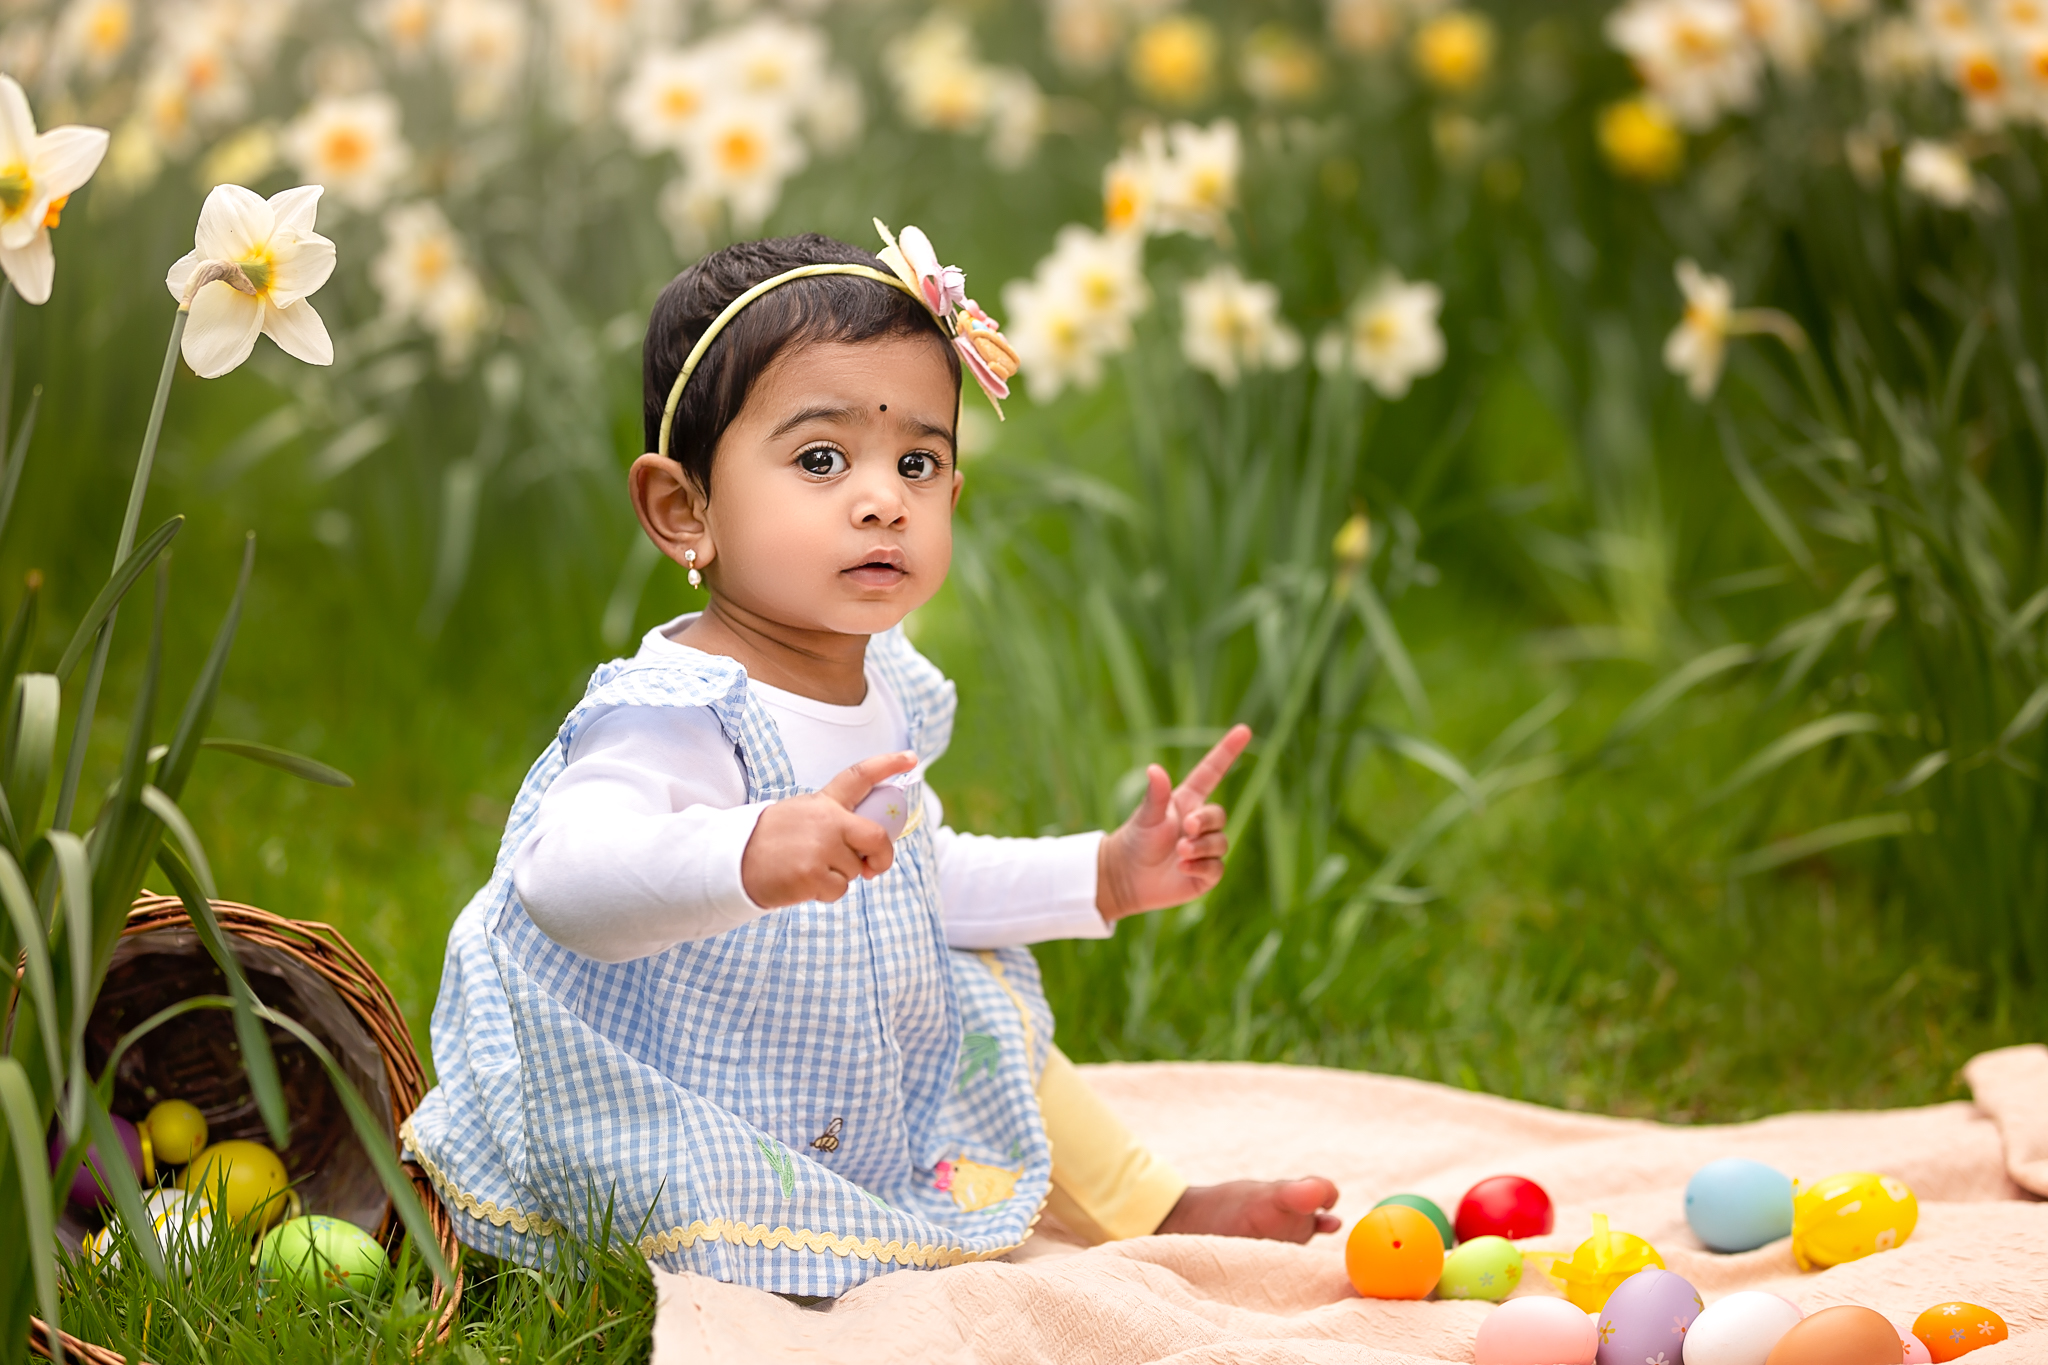 Baby photography Leeds, York, Harrogate, Bradford: Easter theme outdoor baby session in Leeds, Yorkshire